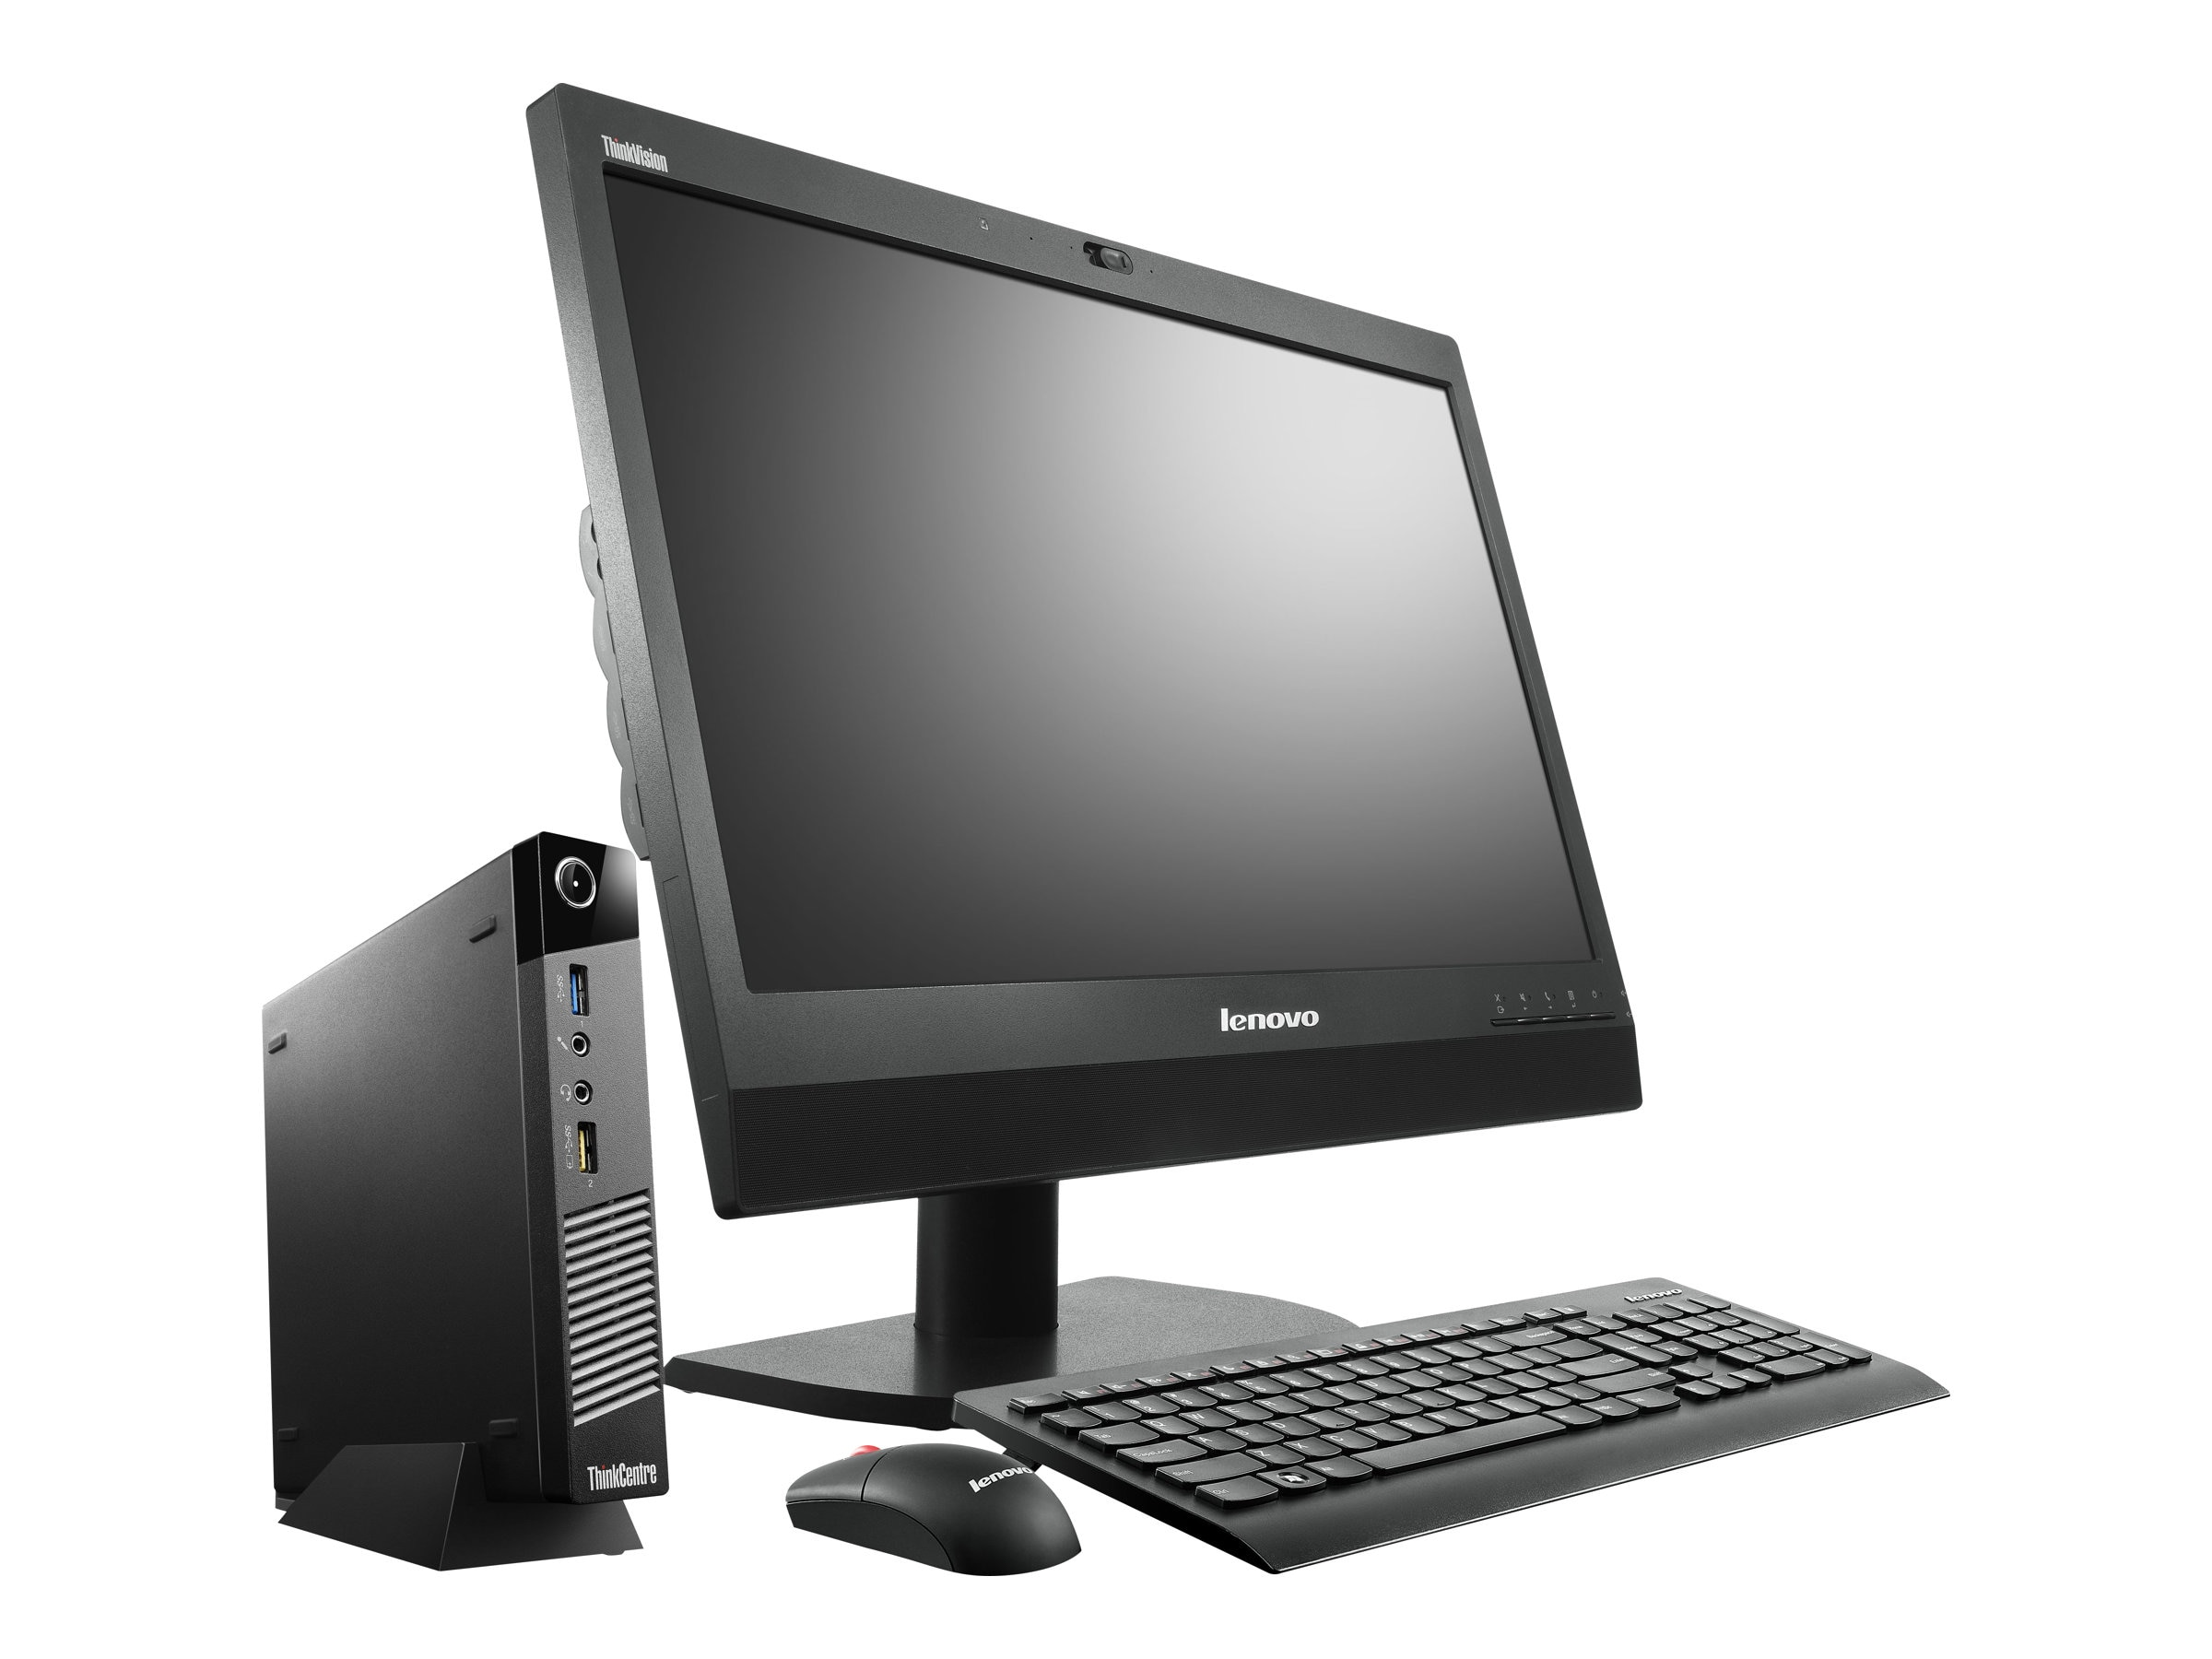 Lenovo TopSeller ThinkCentre M93p 2.2GHz Core i7 4GB RAM 256GB hard drive, 10AB004TUS